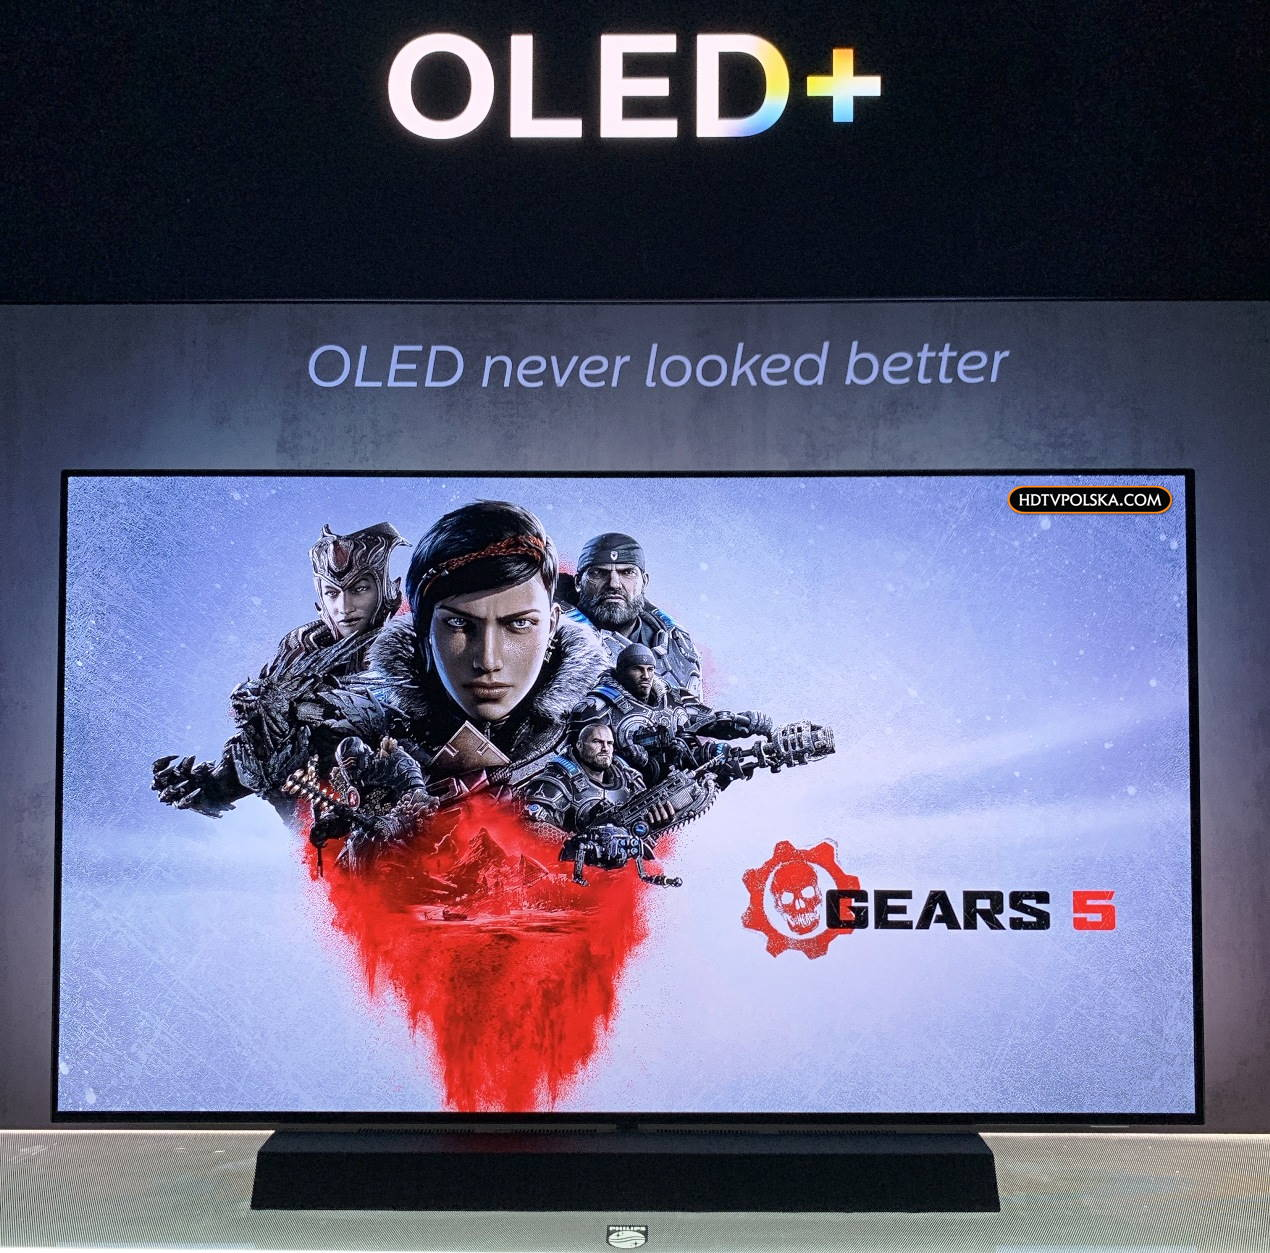 OLED+ 934 Philips Bowers & Wilkins